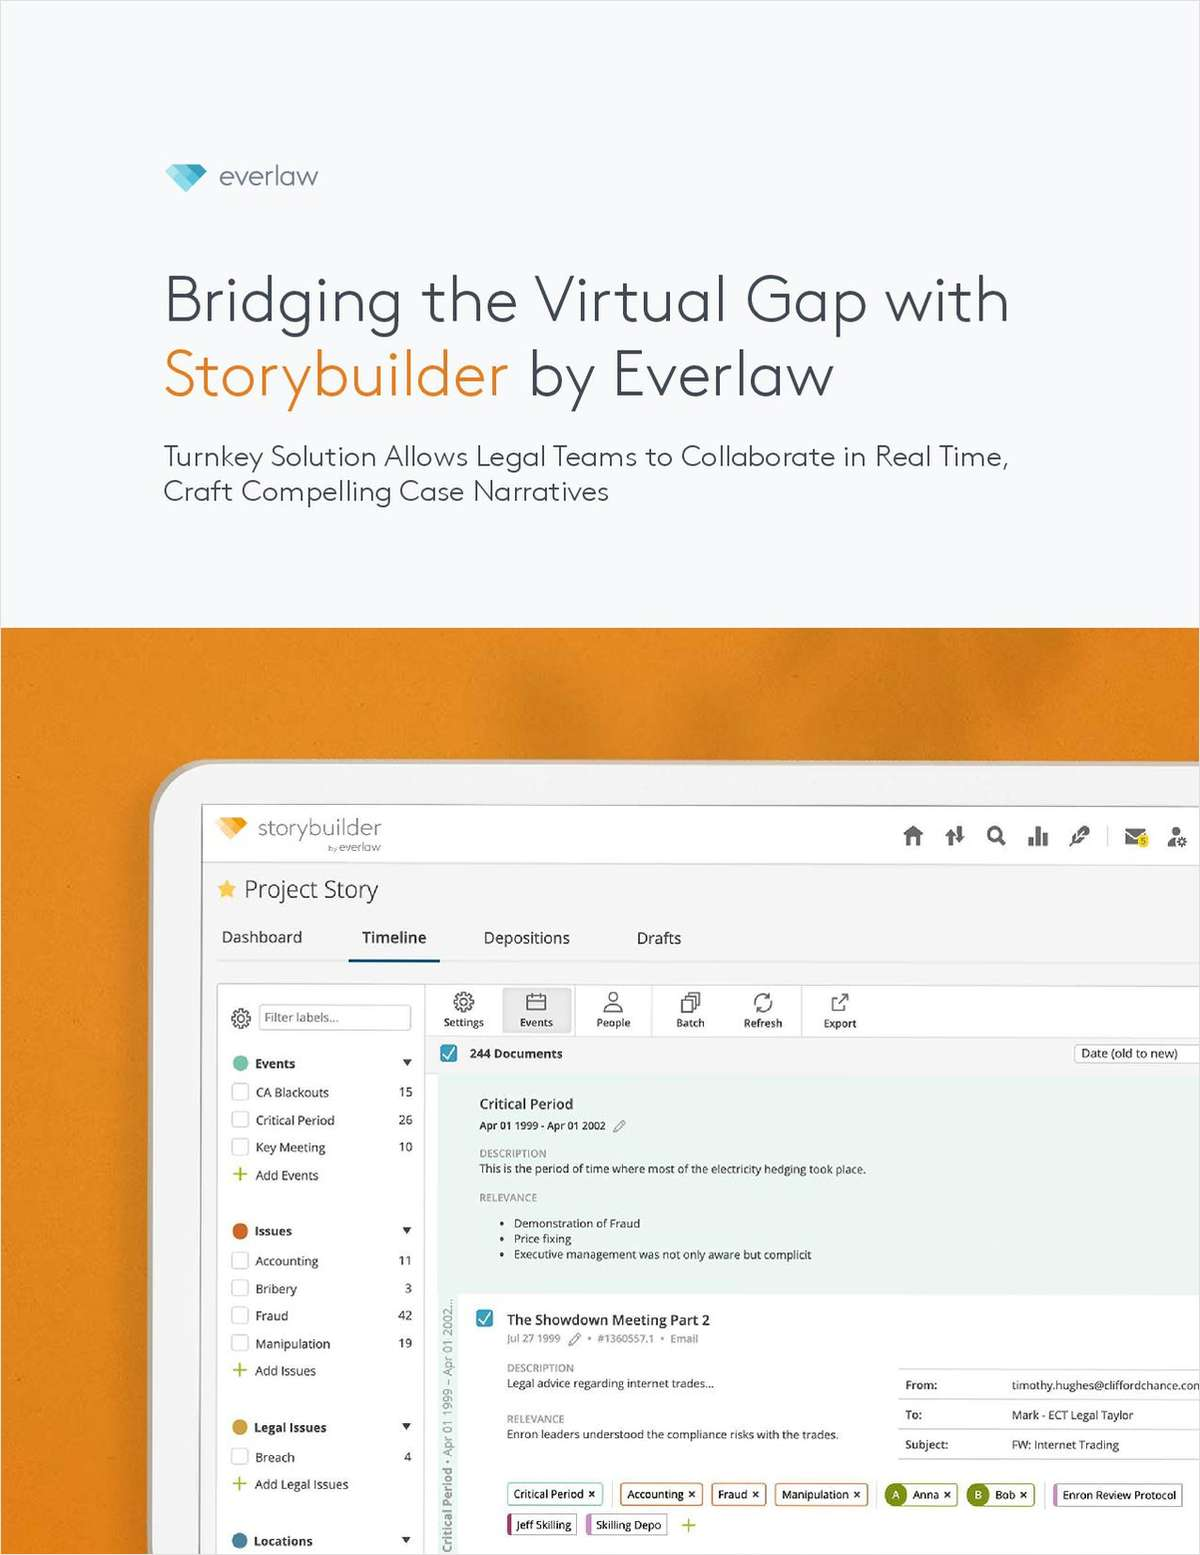 Preparing for complex litigation has traditionally been a collaborative effort among large legal teams. That's why we're excited to introduce to you the legal industry's first free narrative-building toolkit: Storybuilder by Everlaw.